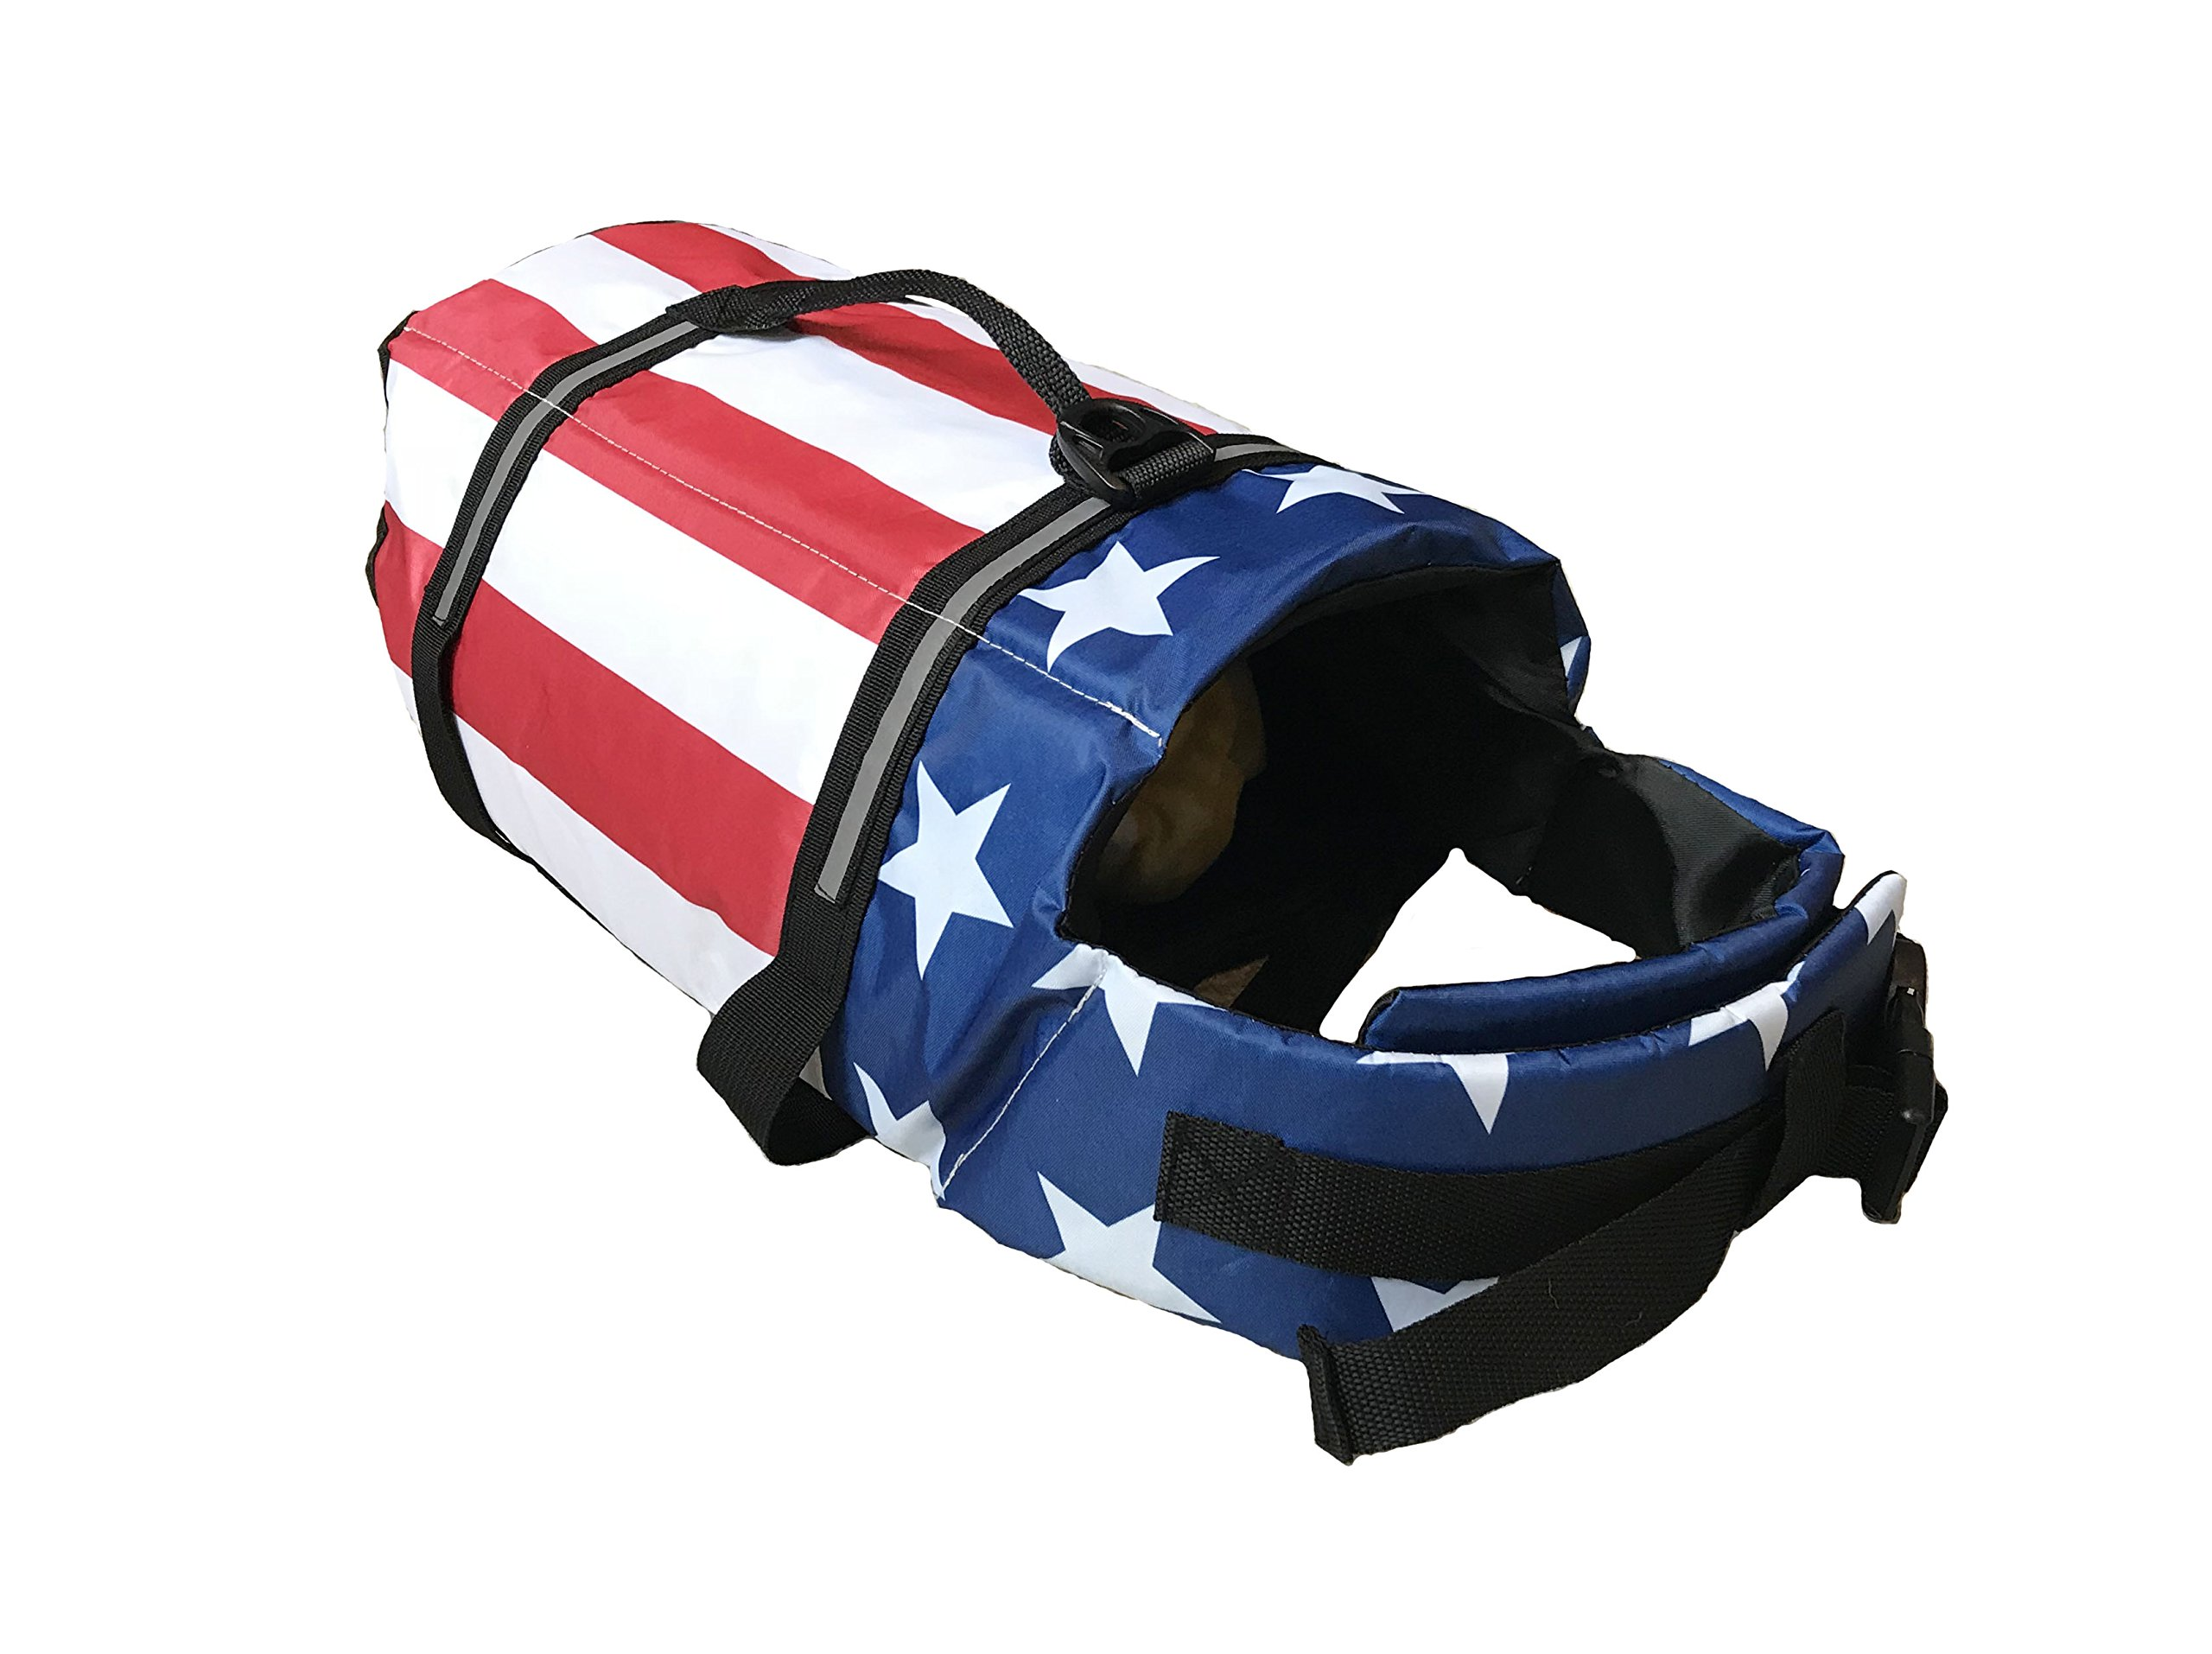 KING Pup Dog Life Jacket, American Flag Life Vest for Puppies and Dogs. Safe and Secure with Extra Padding and American Flag Design (Extra Large, Blue) by King Pup